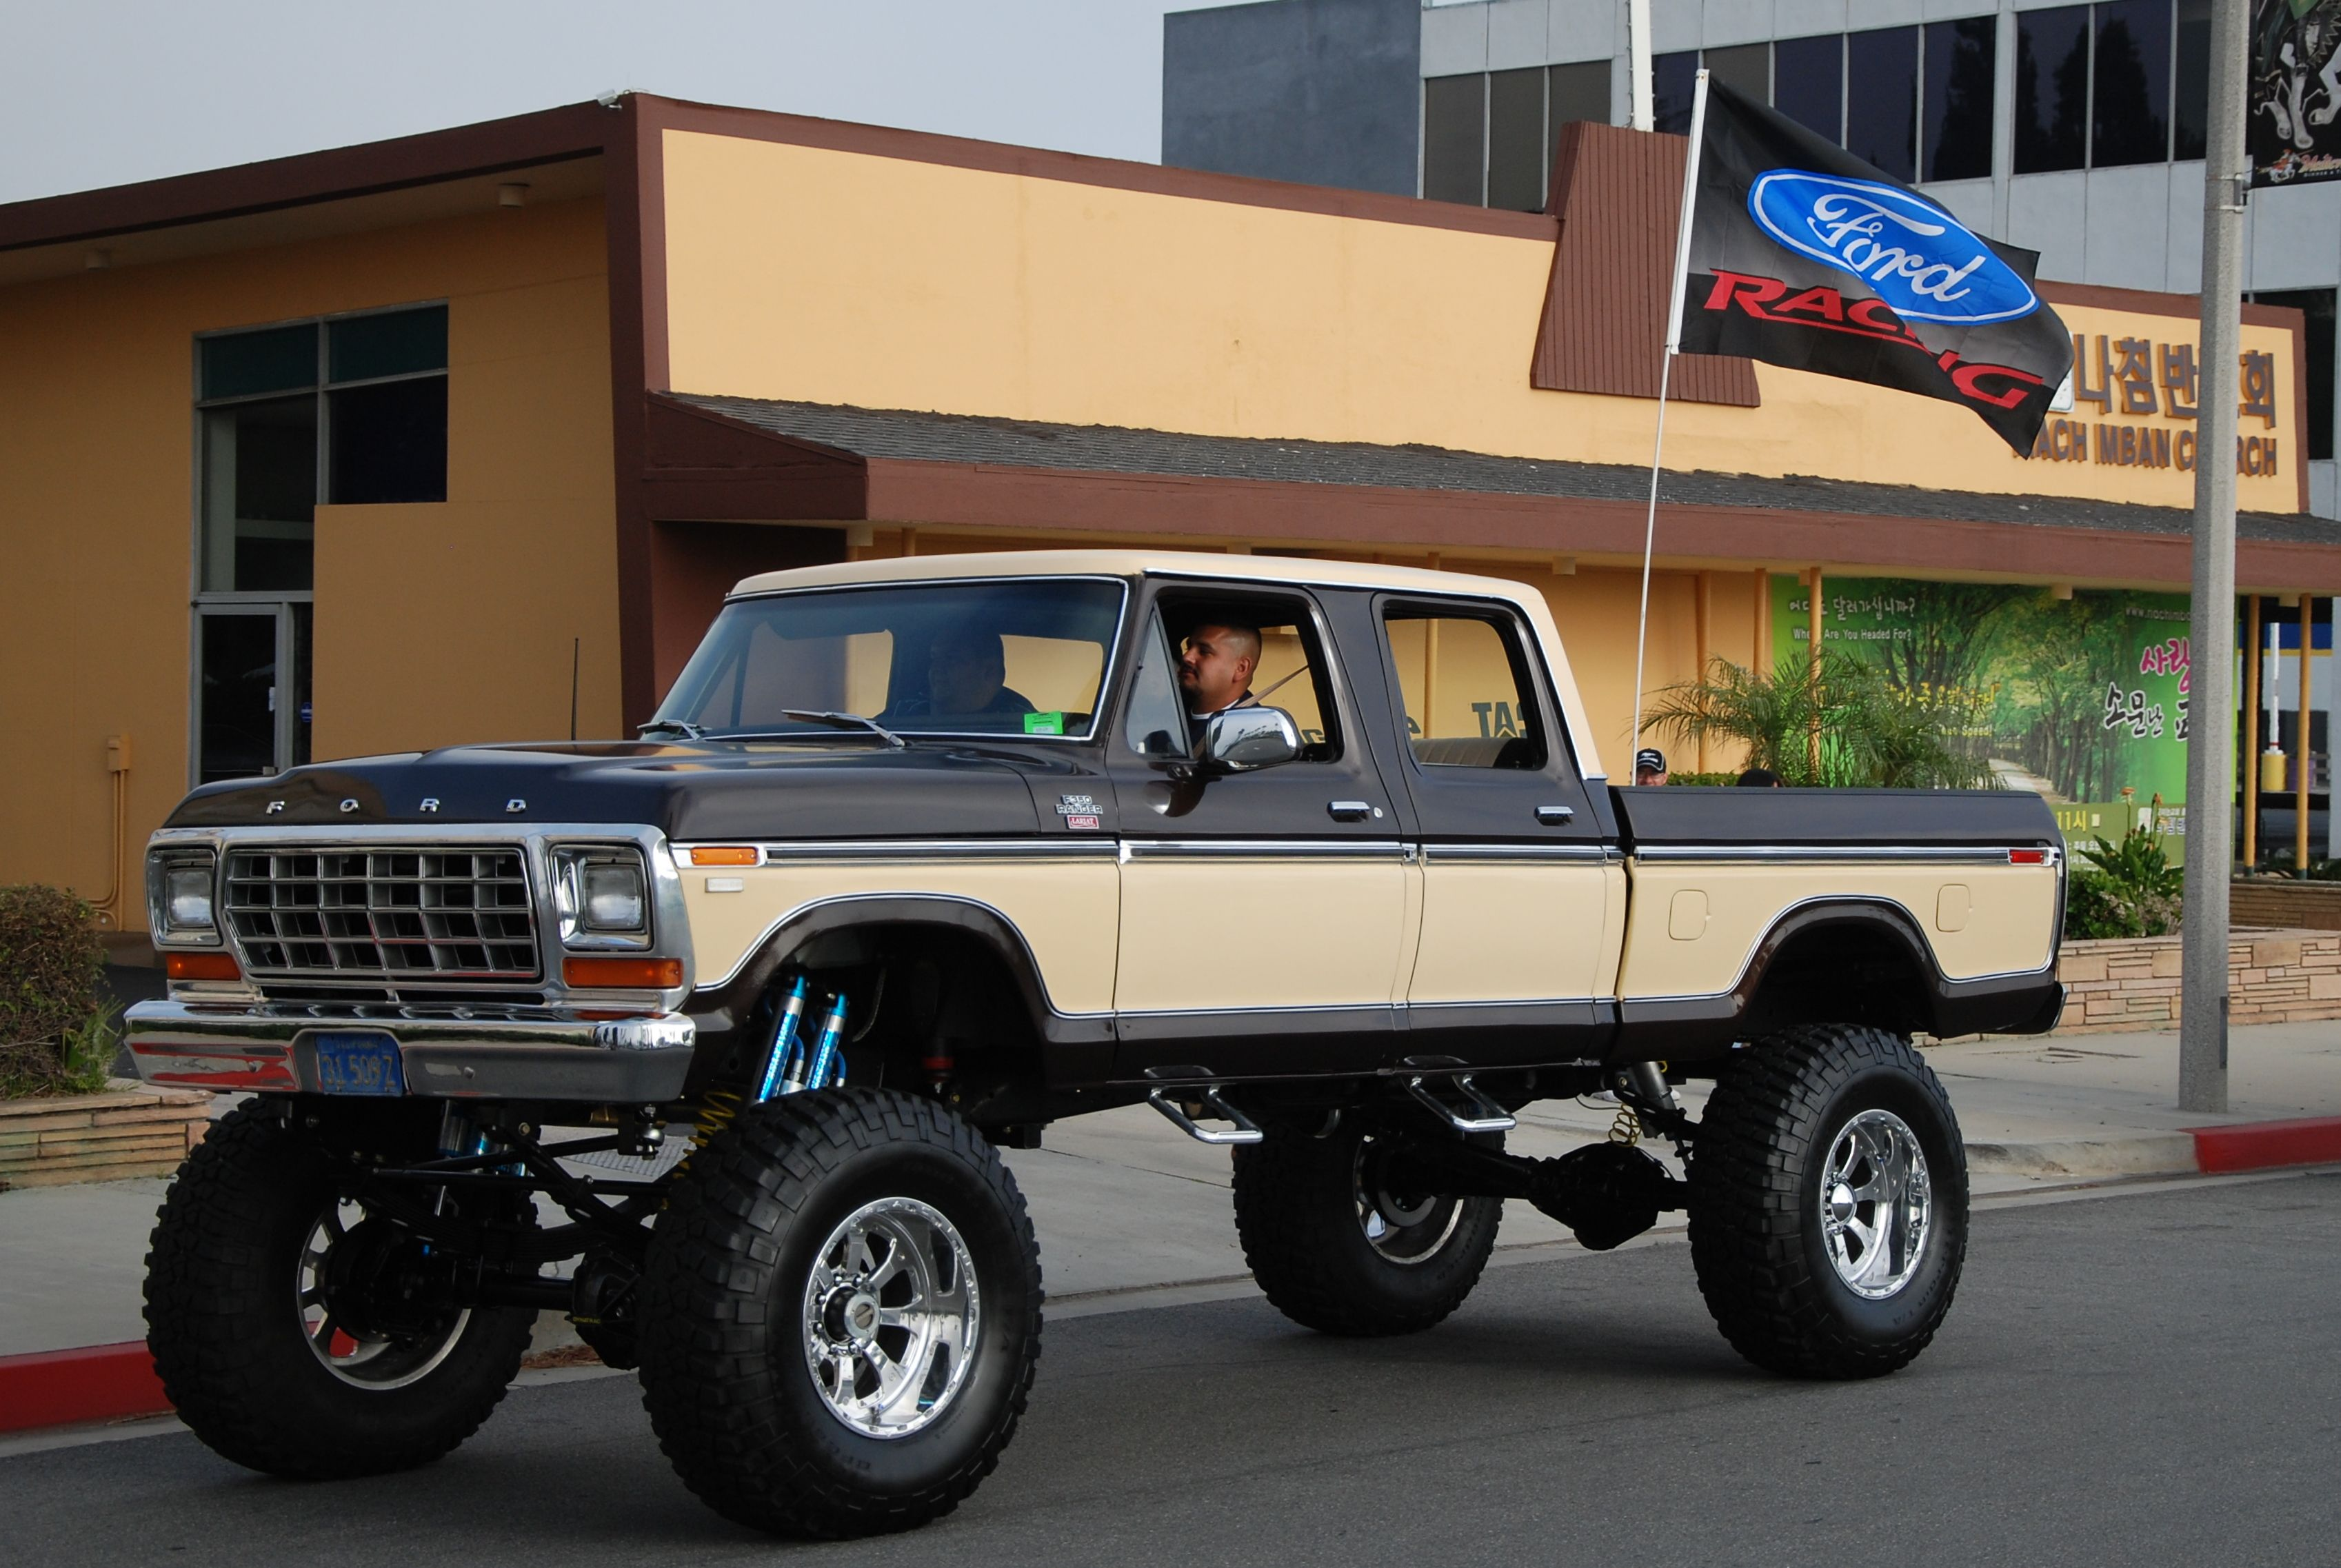 Awesome 79 crew cab ford